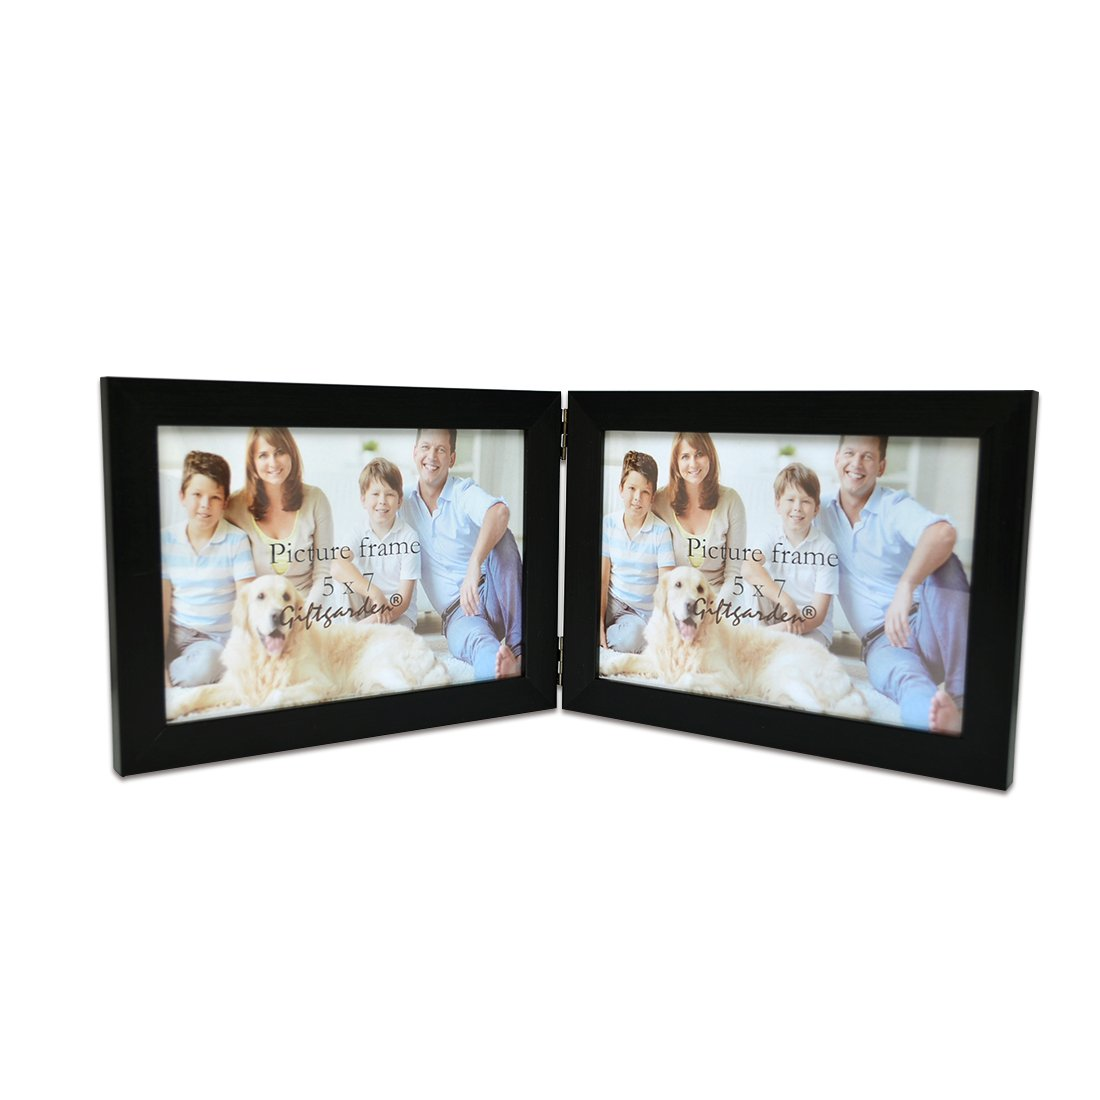 Giftgarden 5x7 inch Double Picture Photo Frame Friends Gift, PVC Lens Sainthood X1012US